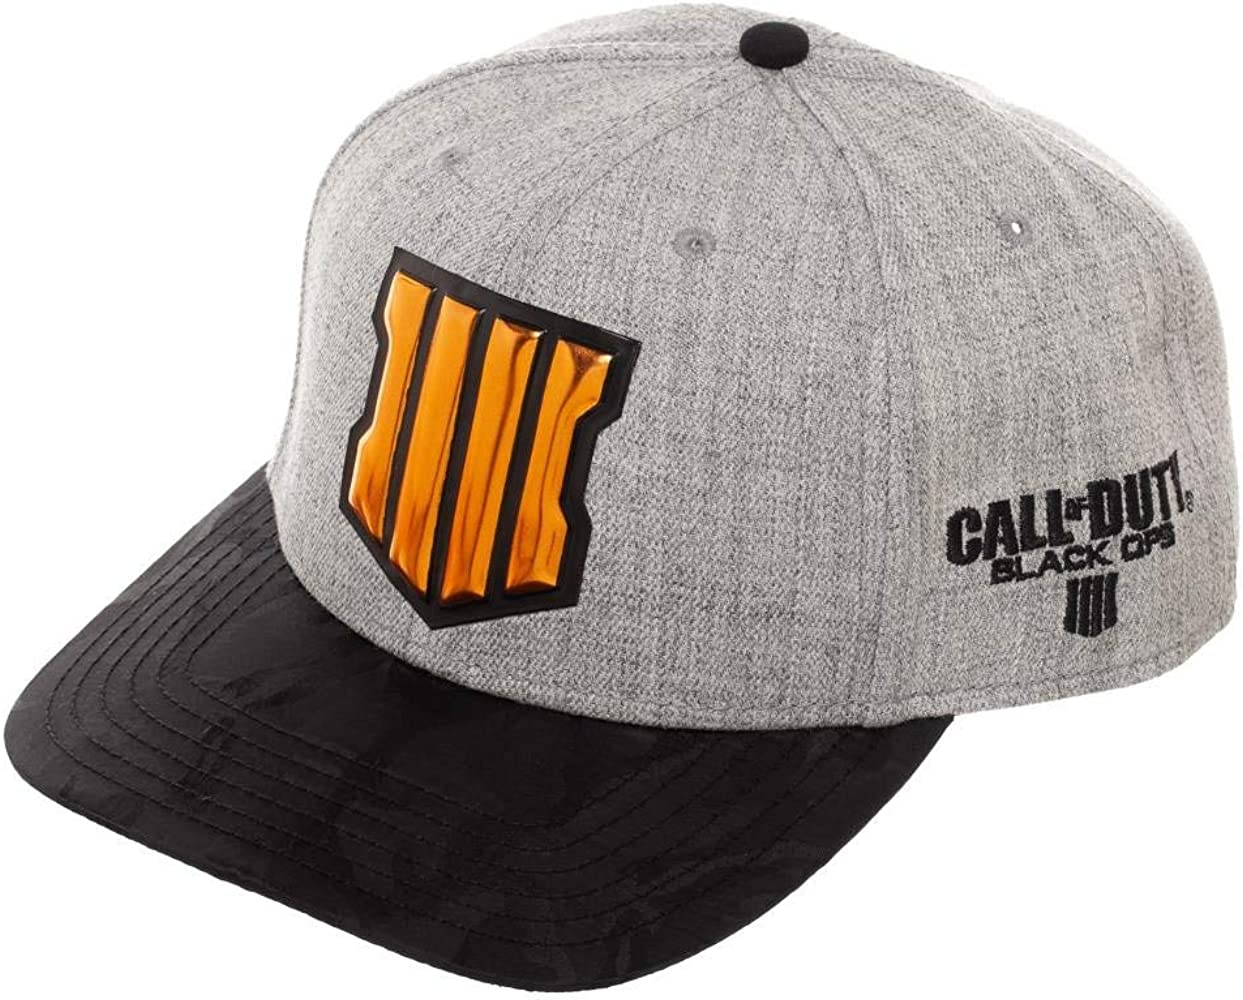 c7a4d9752 Call of Duty Black Ops 4 Hat Call of Duty Accessories Call of Duty Snapback  Hat - Call of Duty Hat Call of Duty Black Ops Hat